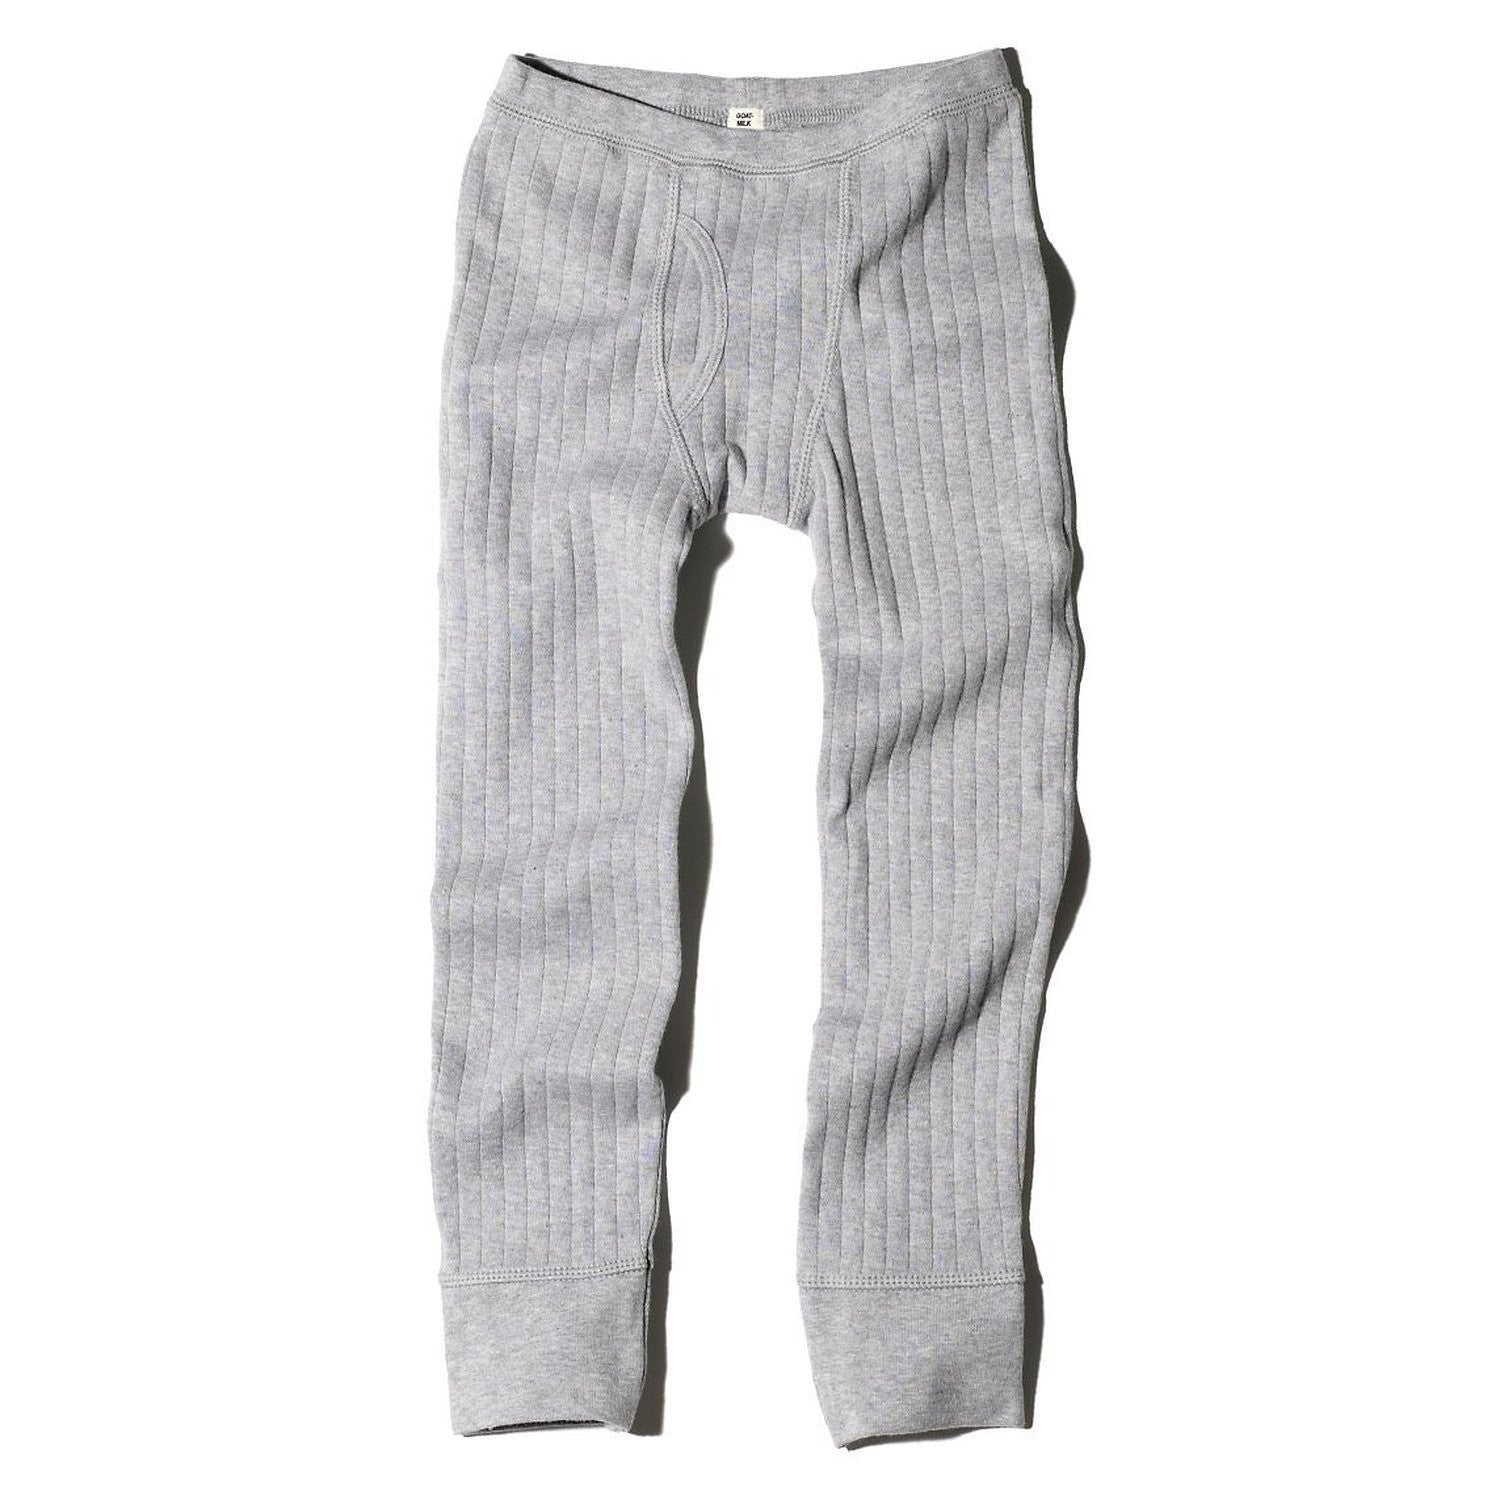 Goat-Milk Goat-Milk Boys Dropneedle Thermal Bottoms - fawn&forest